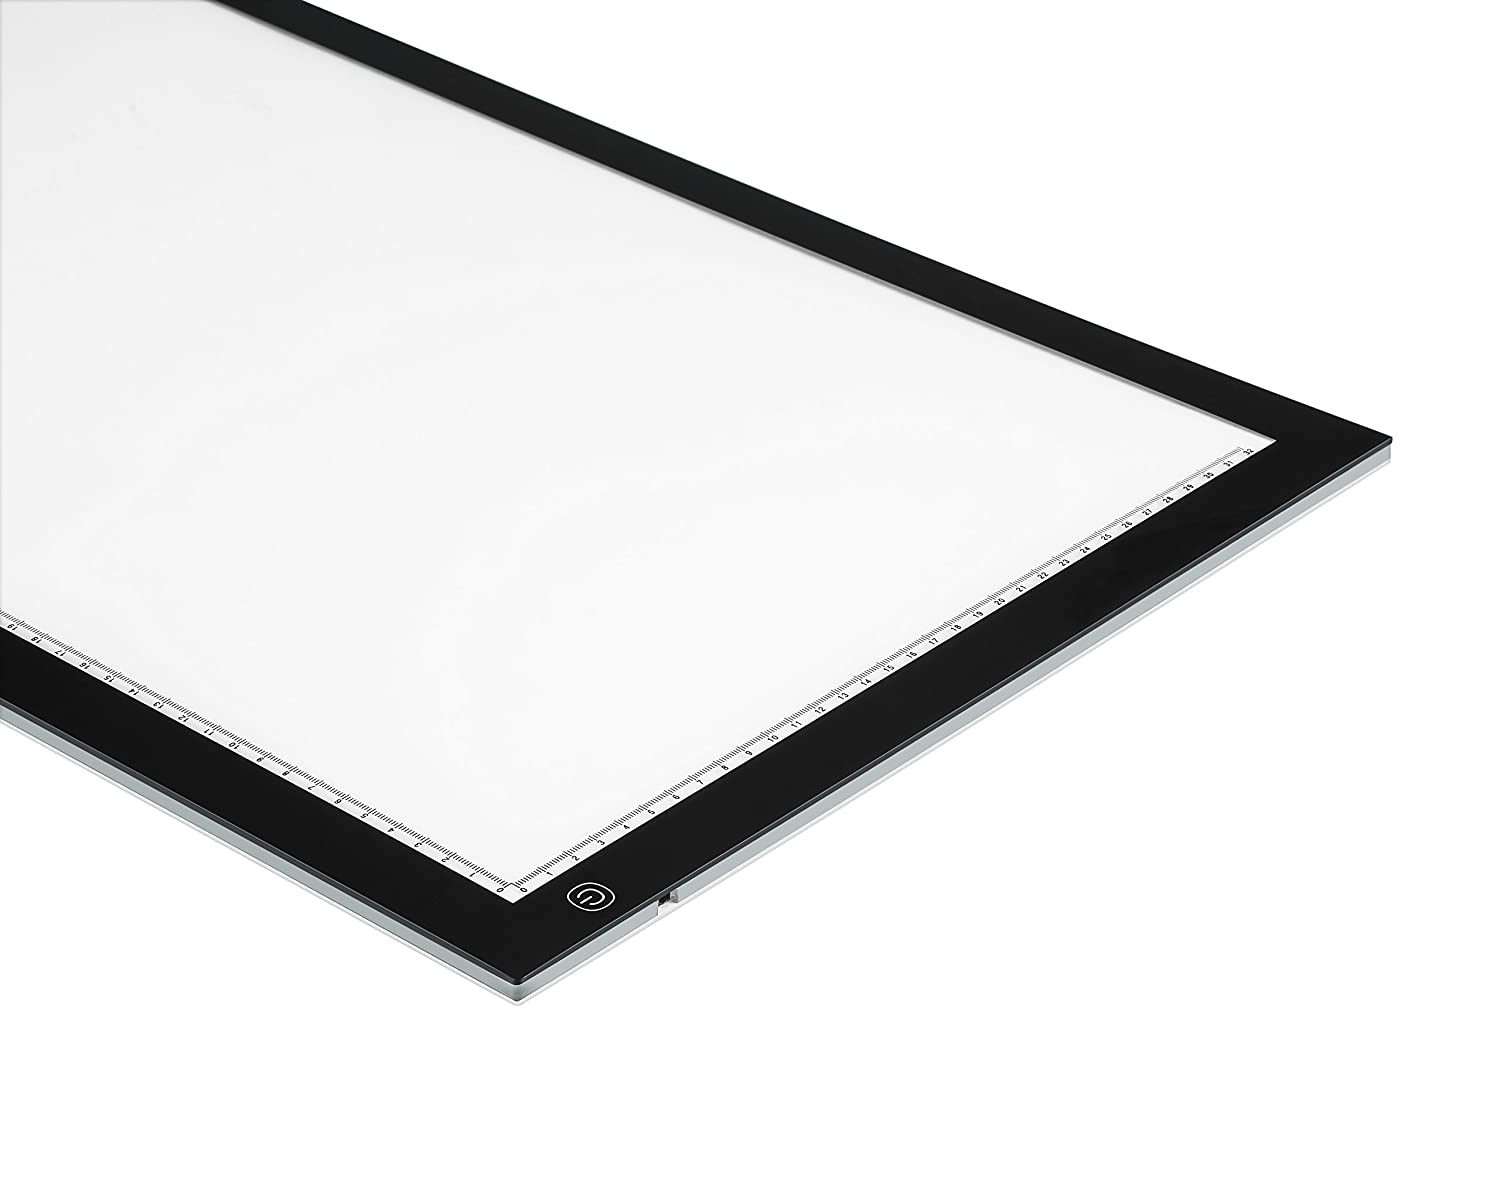 """Dbmier A2 LED Ultra-Thin Light Tracer Artcraft Tracing Light Pad Adjustable Light Box - 12.60"""" X 20.47"""" with Acrylics 230V AC/DC Power Adapter & Dimmable ..."""